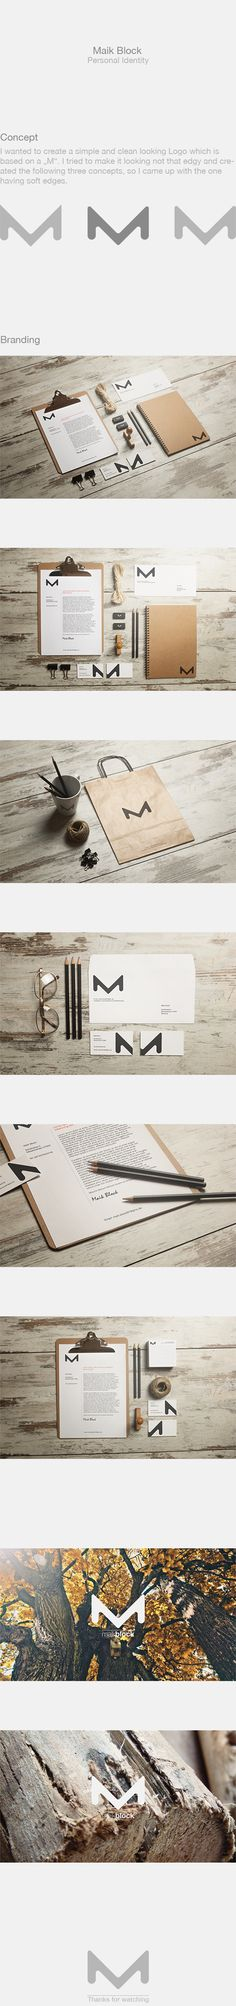 Personal Identity by Maik Block, via Behance - simple